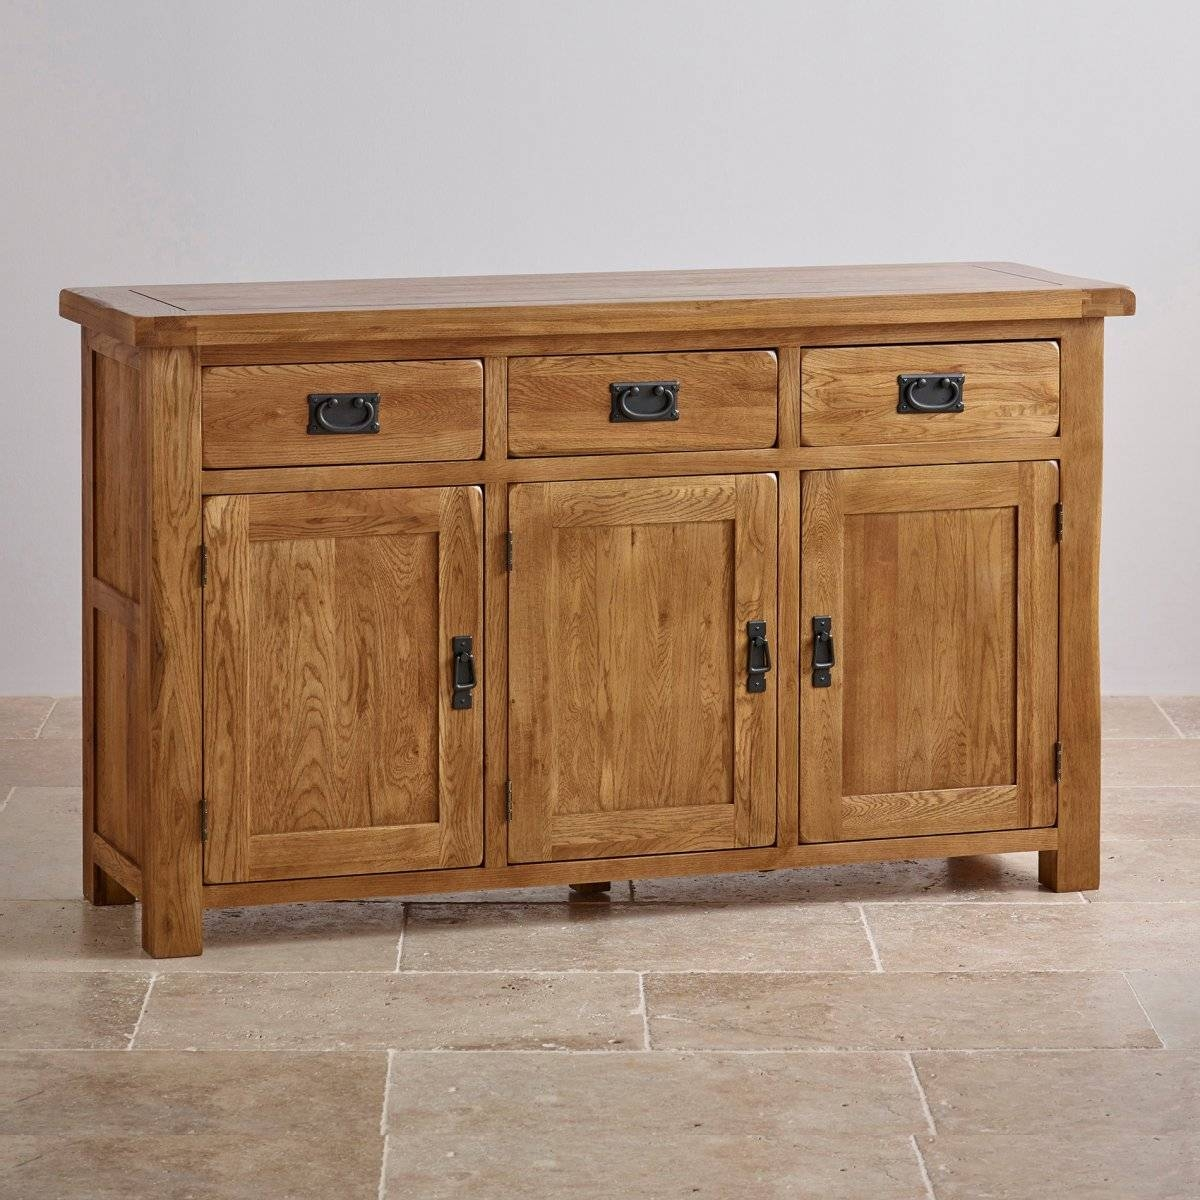 Original Rustic Large Sideboard In Solid Oak | Oak Furniture Land With Large Oak Sideboards (#10 of 15)